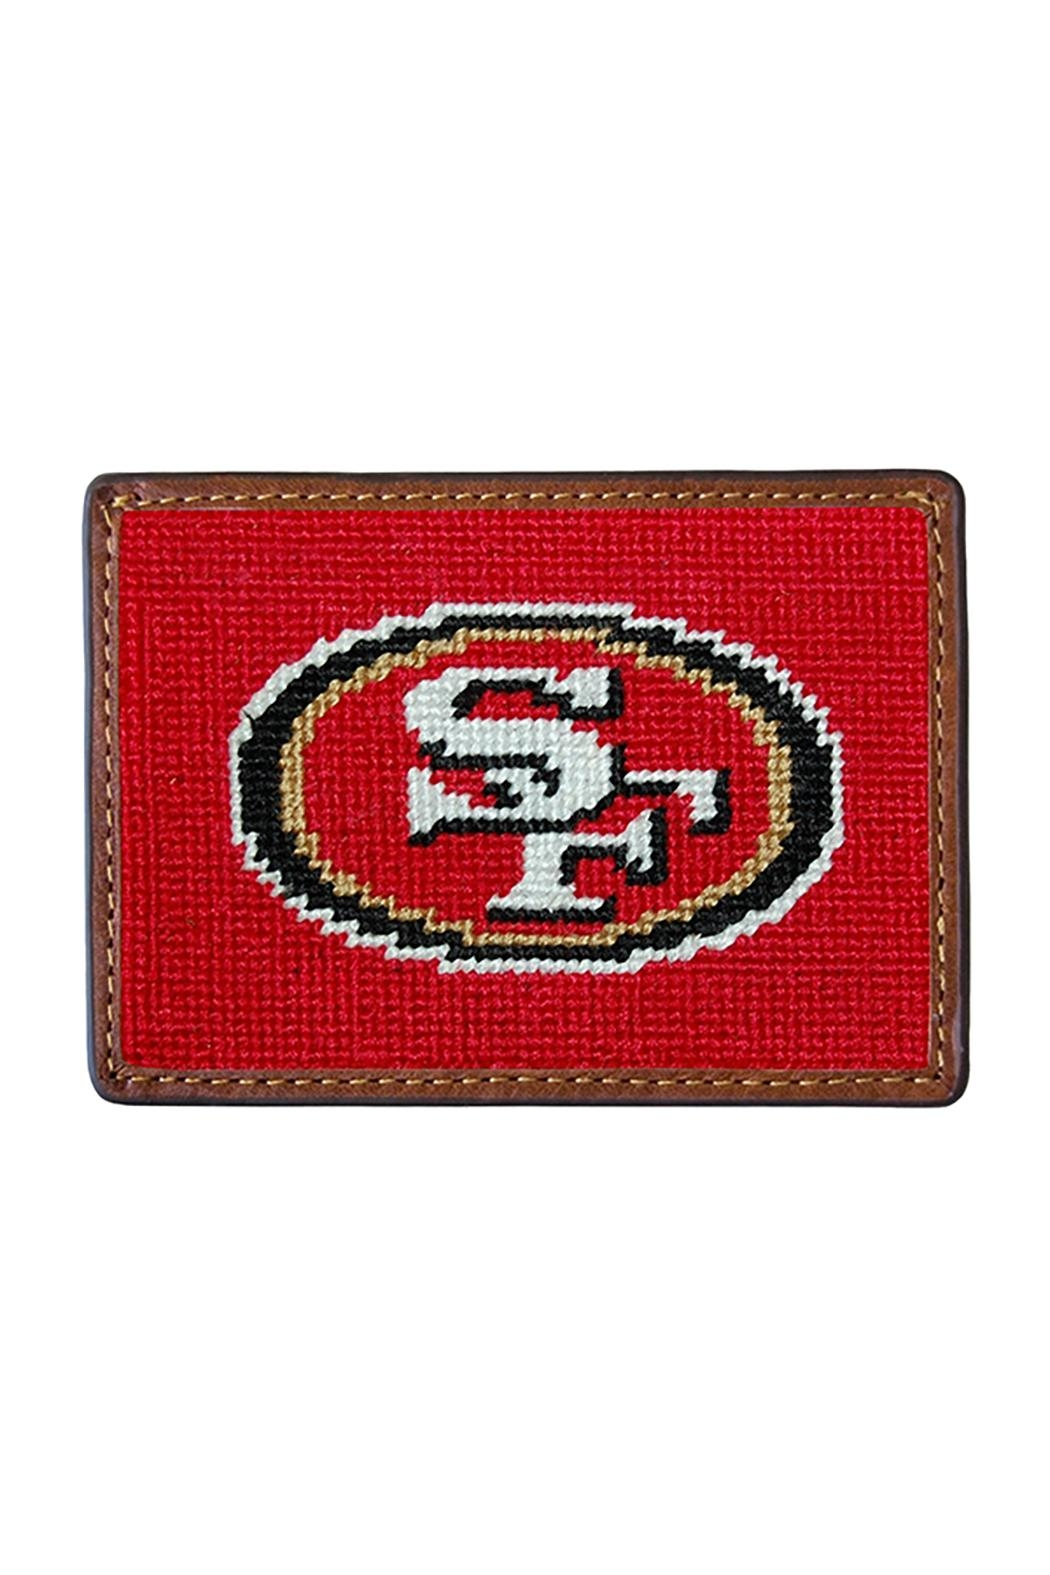 Smathers and Branson 49er's 1/2 Wallet - Main Image